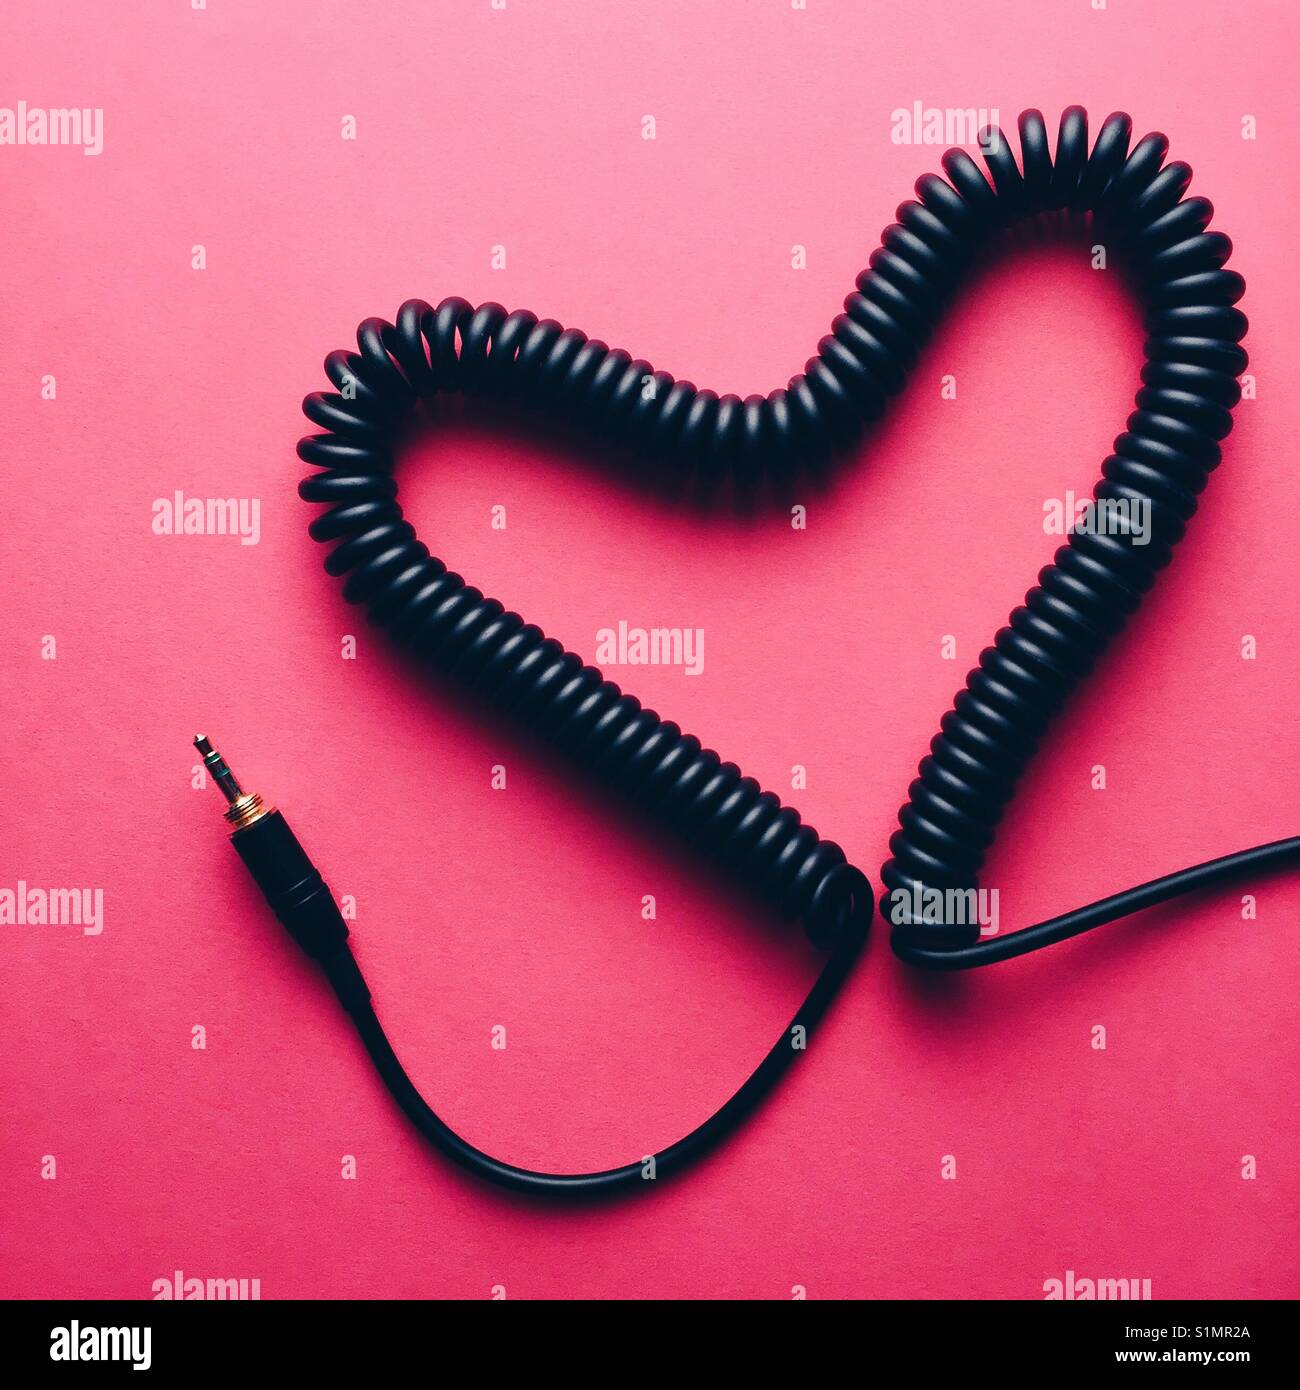 A coiled headphone cable made into a heart shape on a pink background - Stock Image